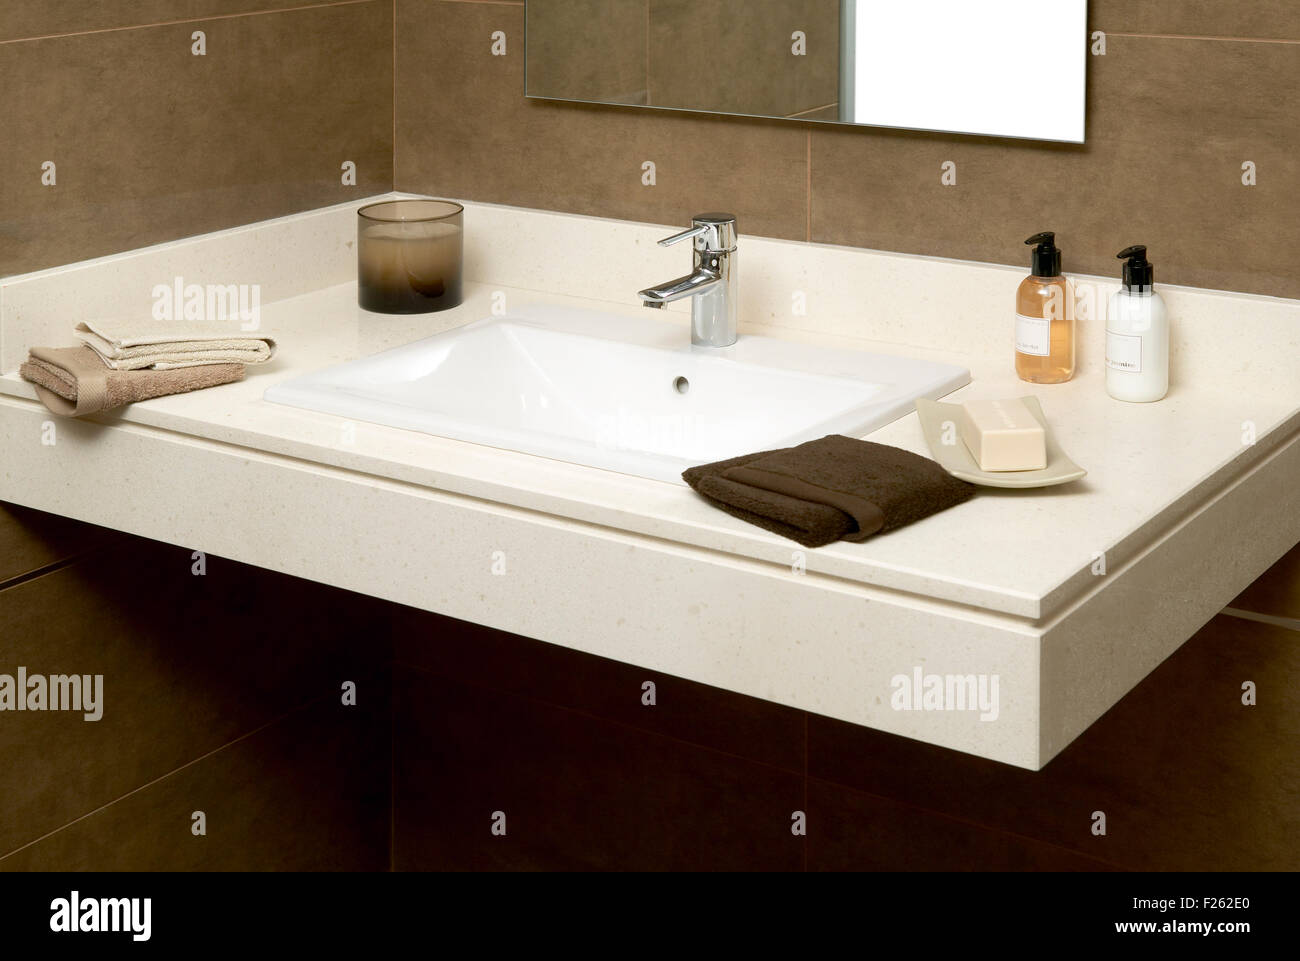 Basin With Soap And Towels In A Bathroom   Stock Image